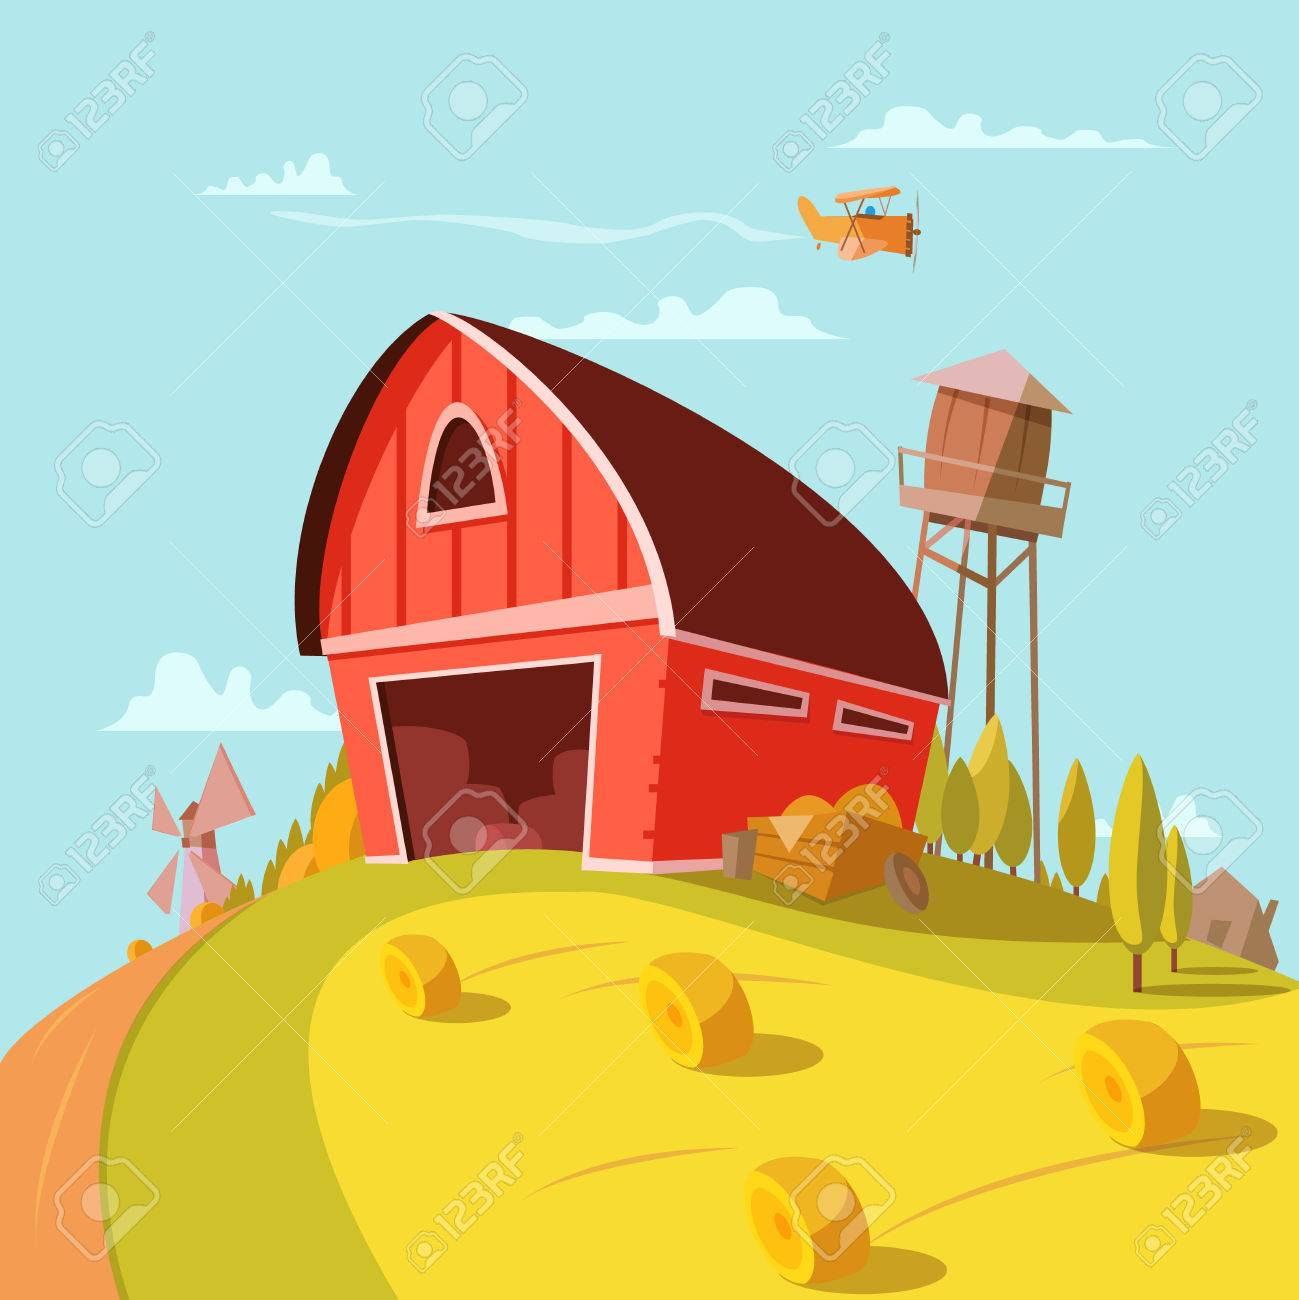 Farm Building Cartoon Background With Fields Grain And Hay Vector Illustration Stock